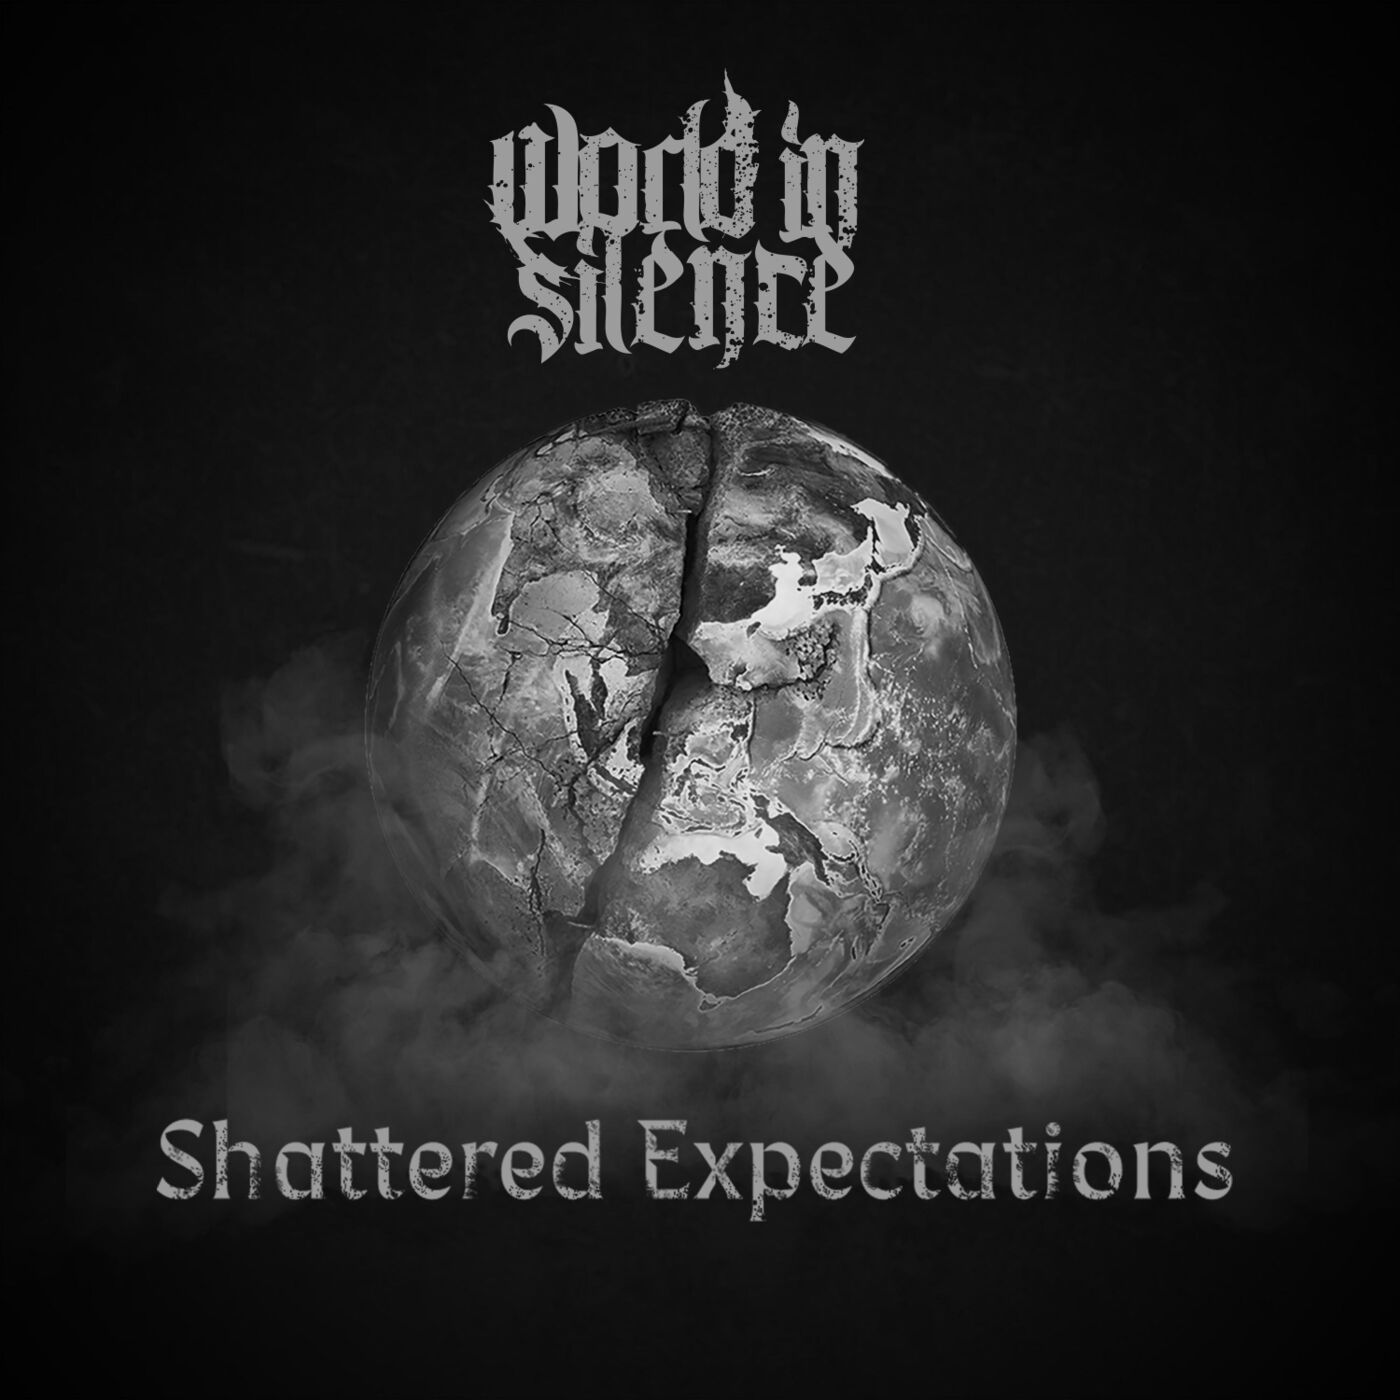 World in Silence - Shattered Expectations (2019)